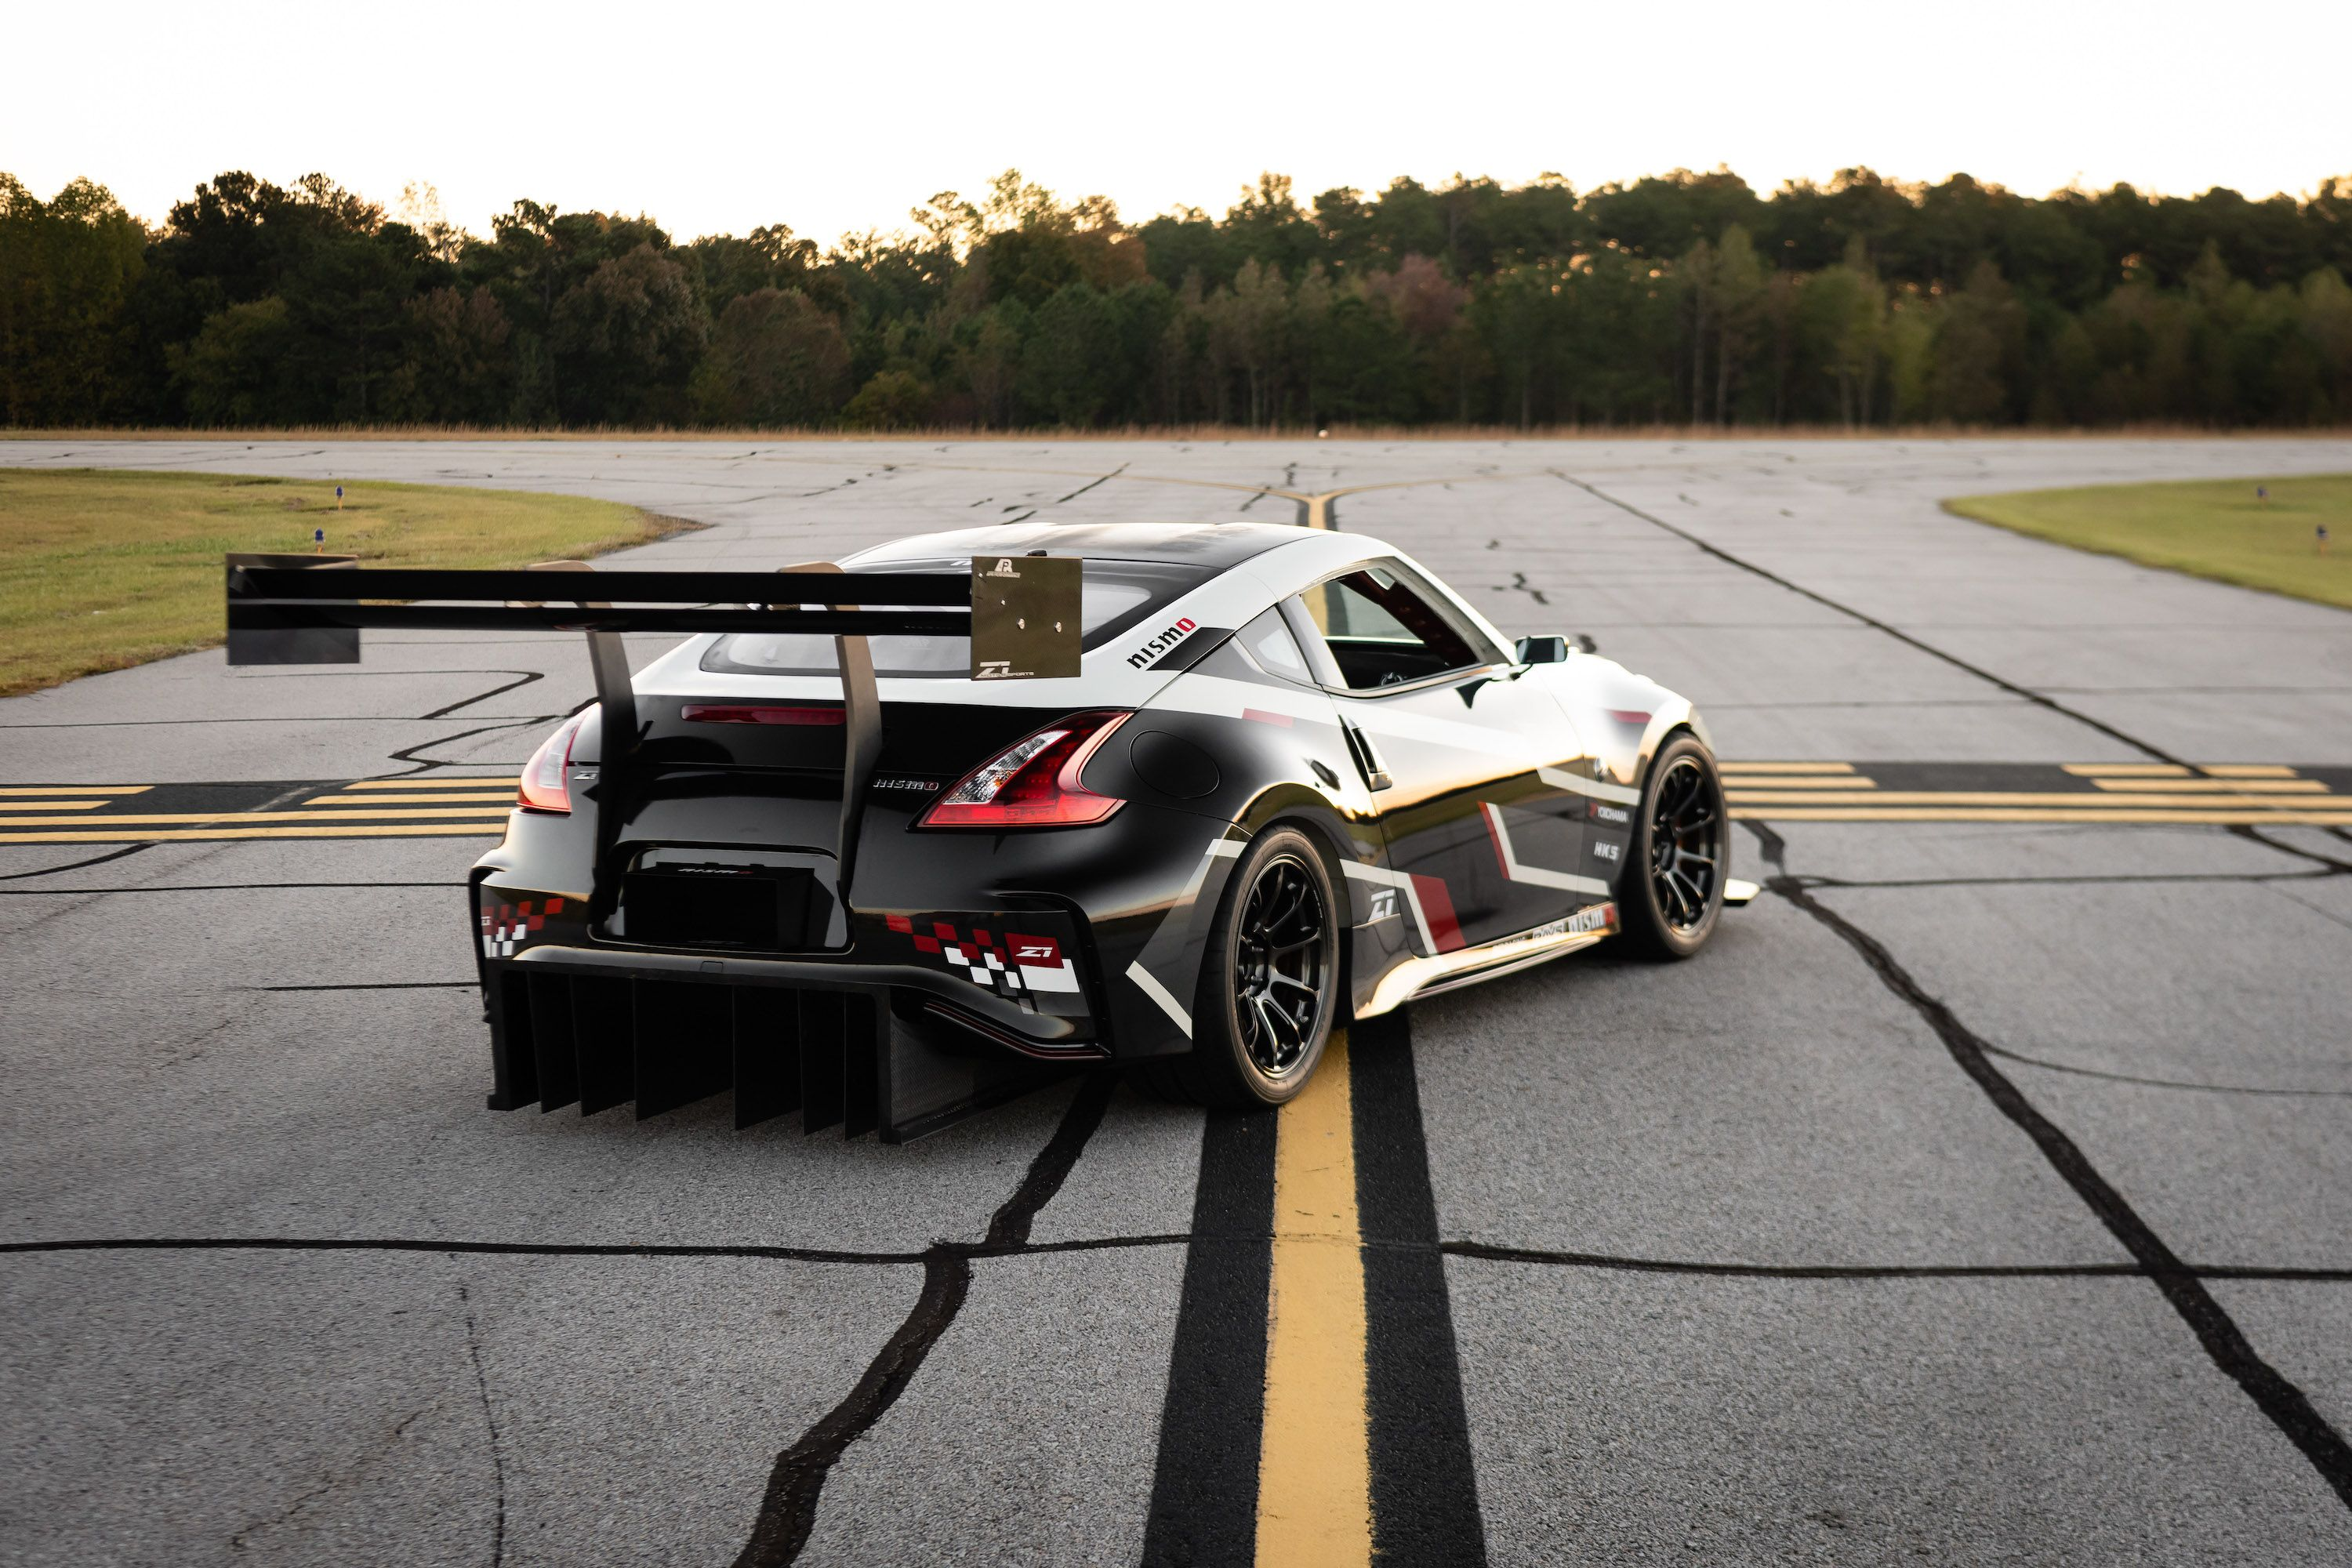 750 Horsepower Nissan 370z Is A Time Attack Race Car